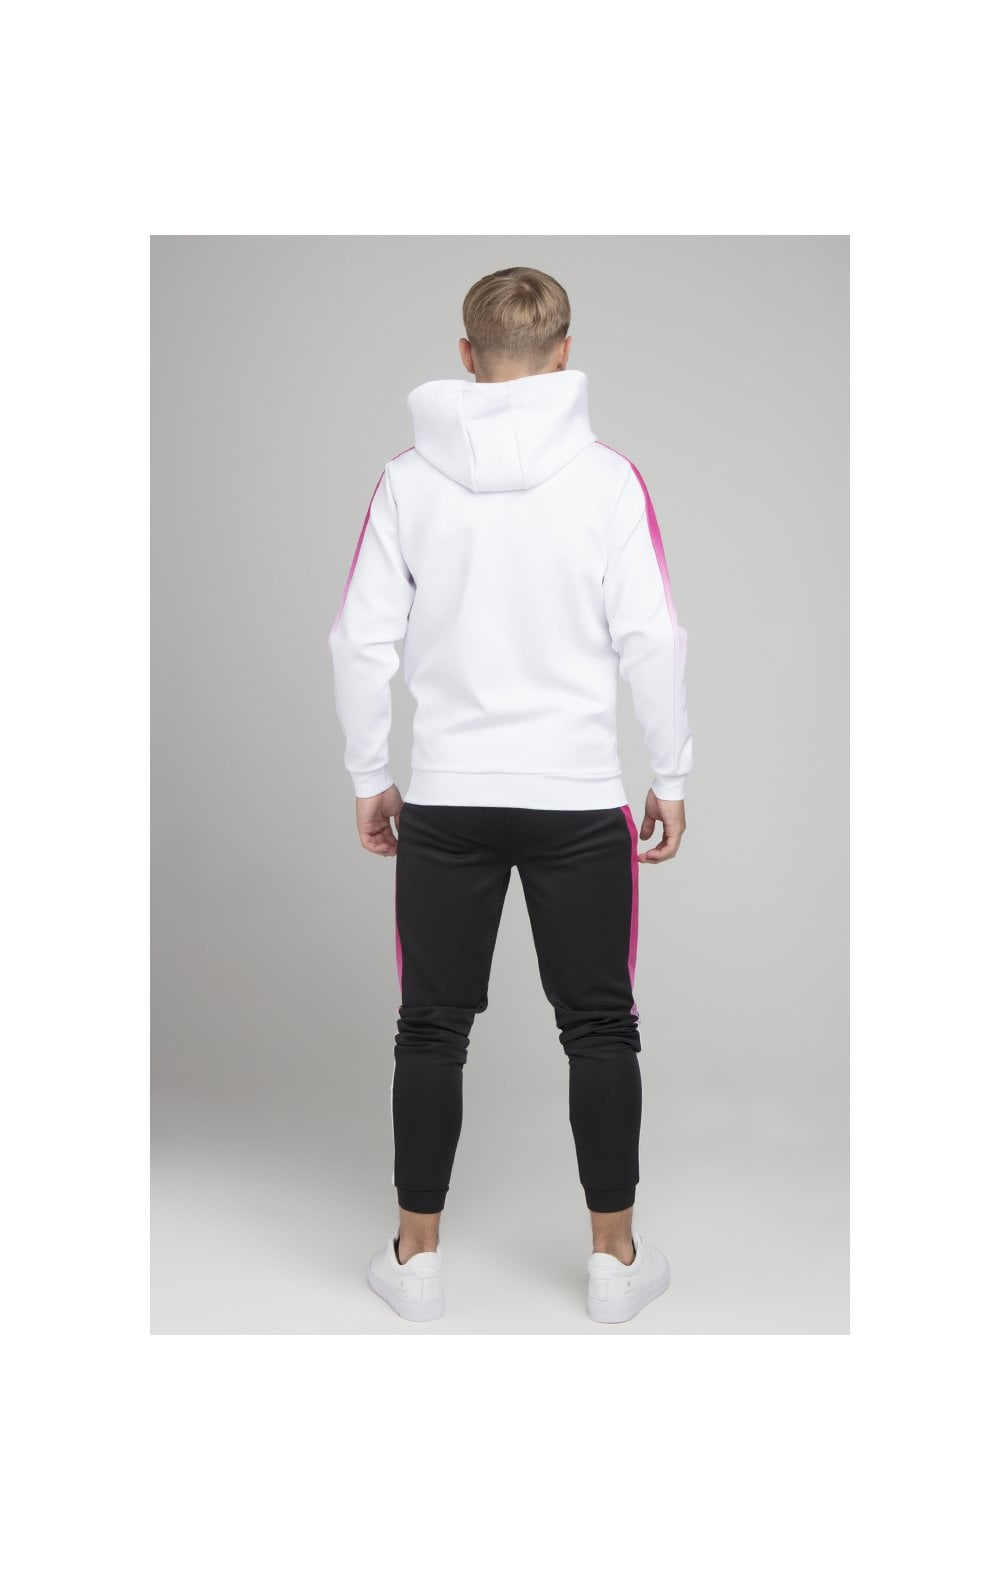 Illusive London Fade Panel Zip Through - White & Pink (4)